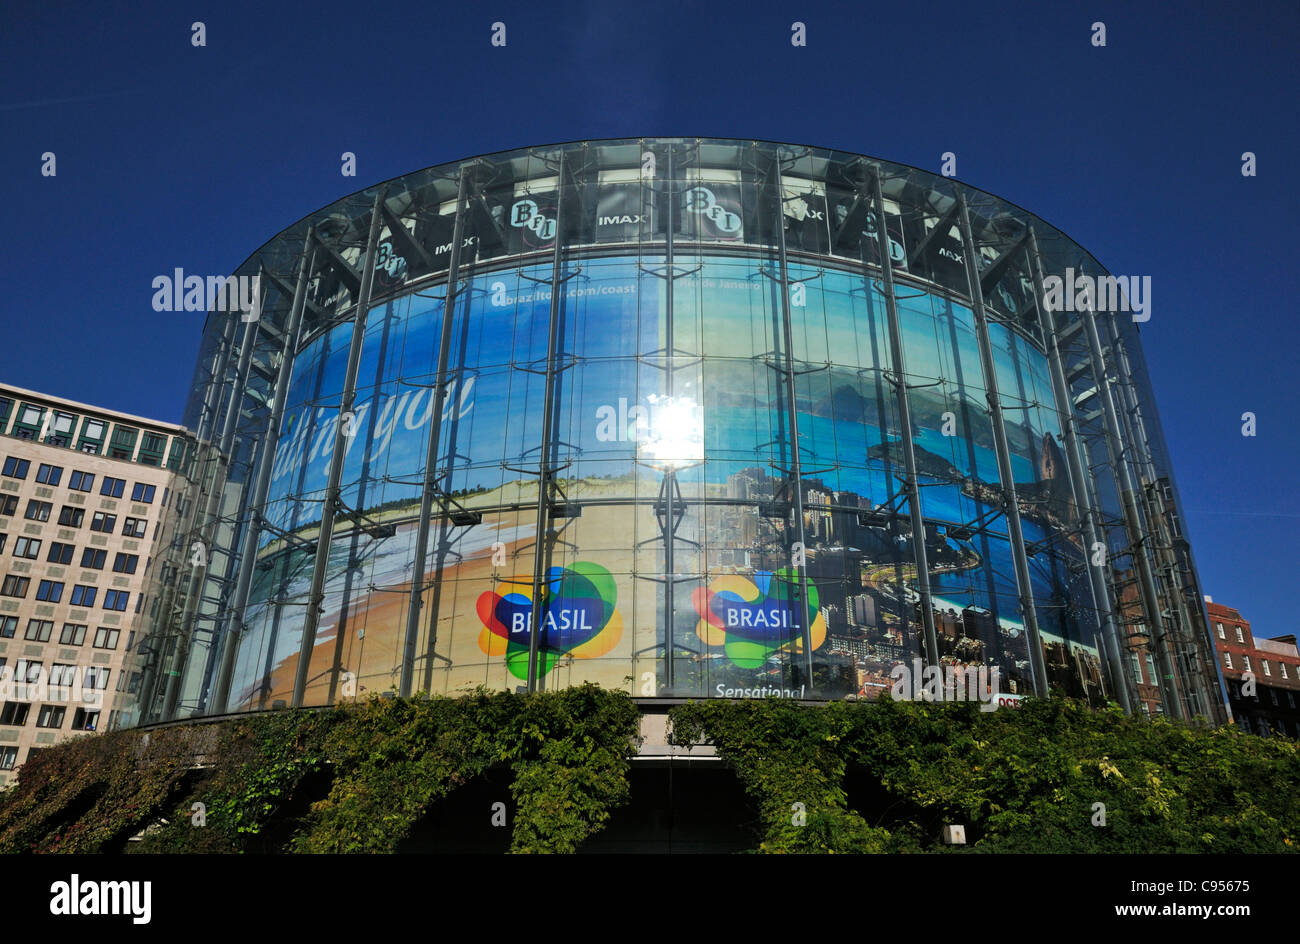 BFI IMAX, South Bank, Waterloo, London SE1, United Kingdom - Stock Image